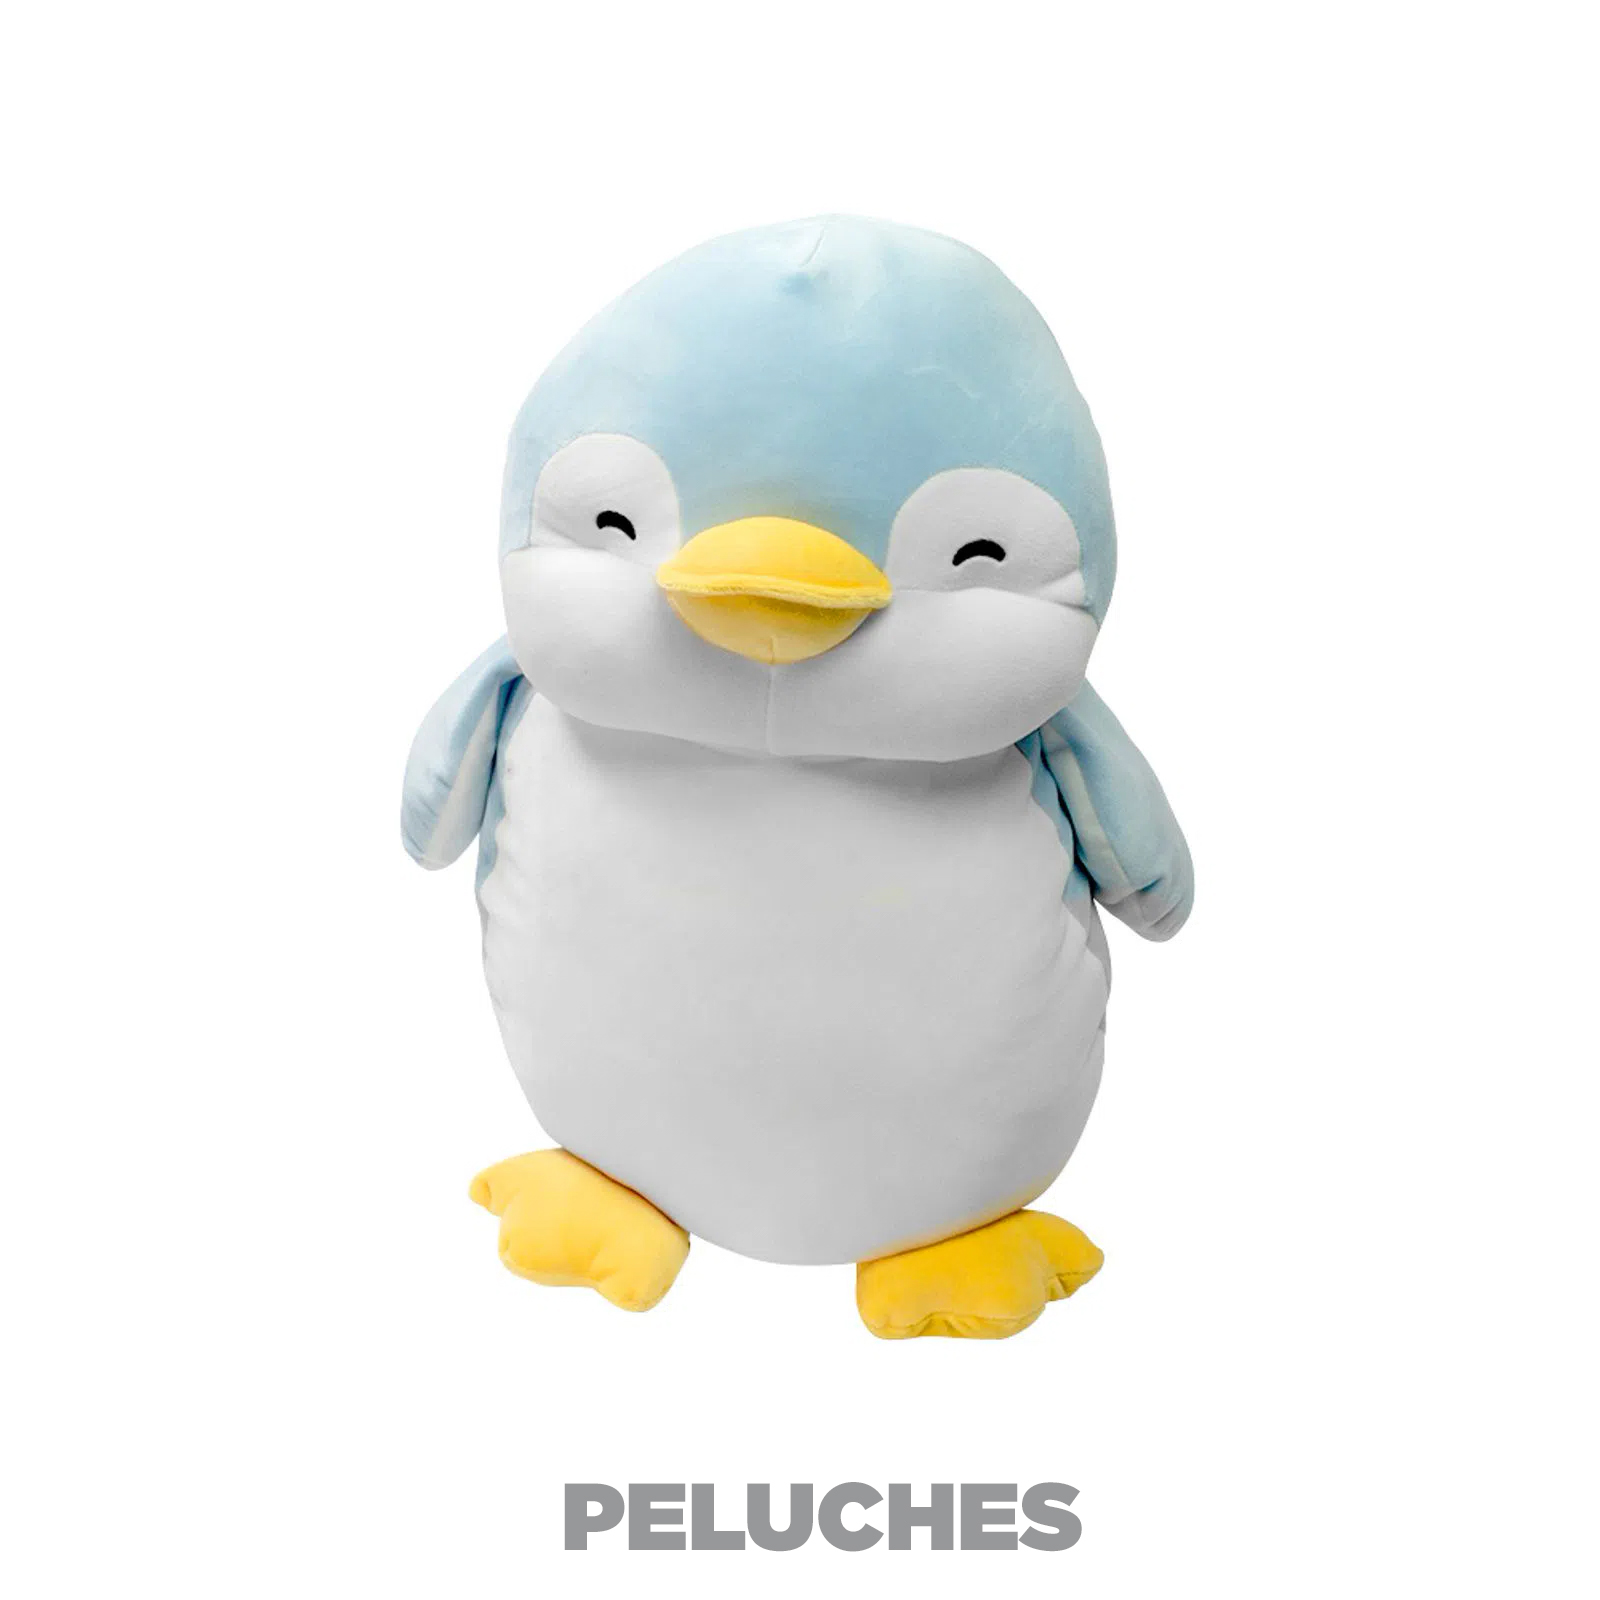 Peluches Apapables